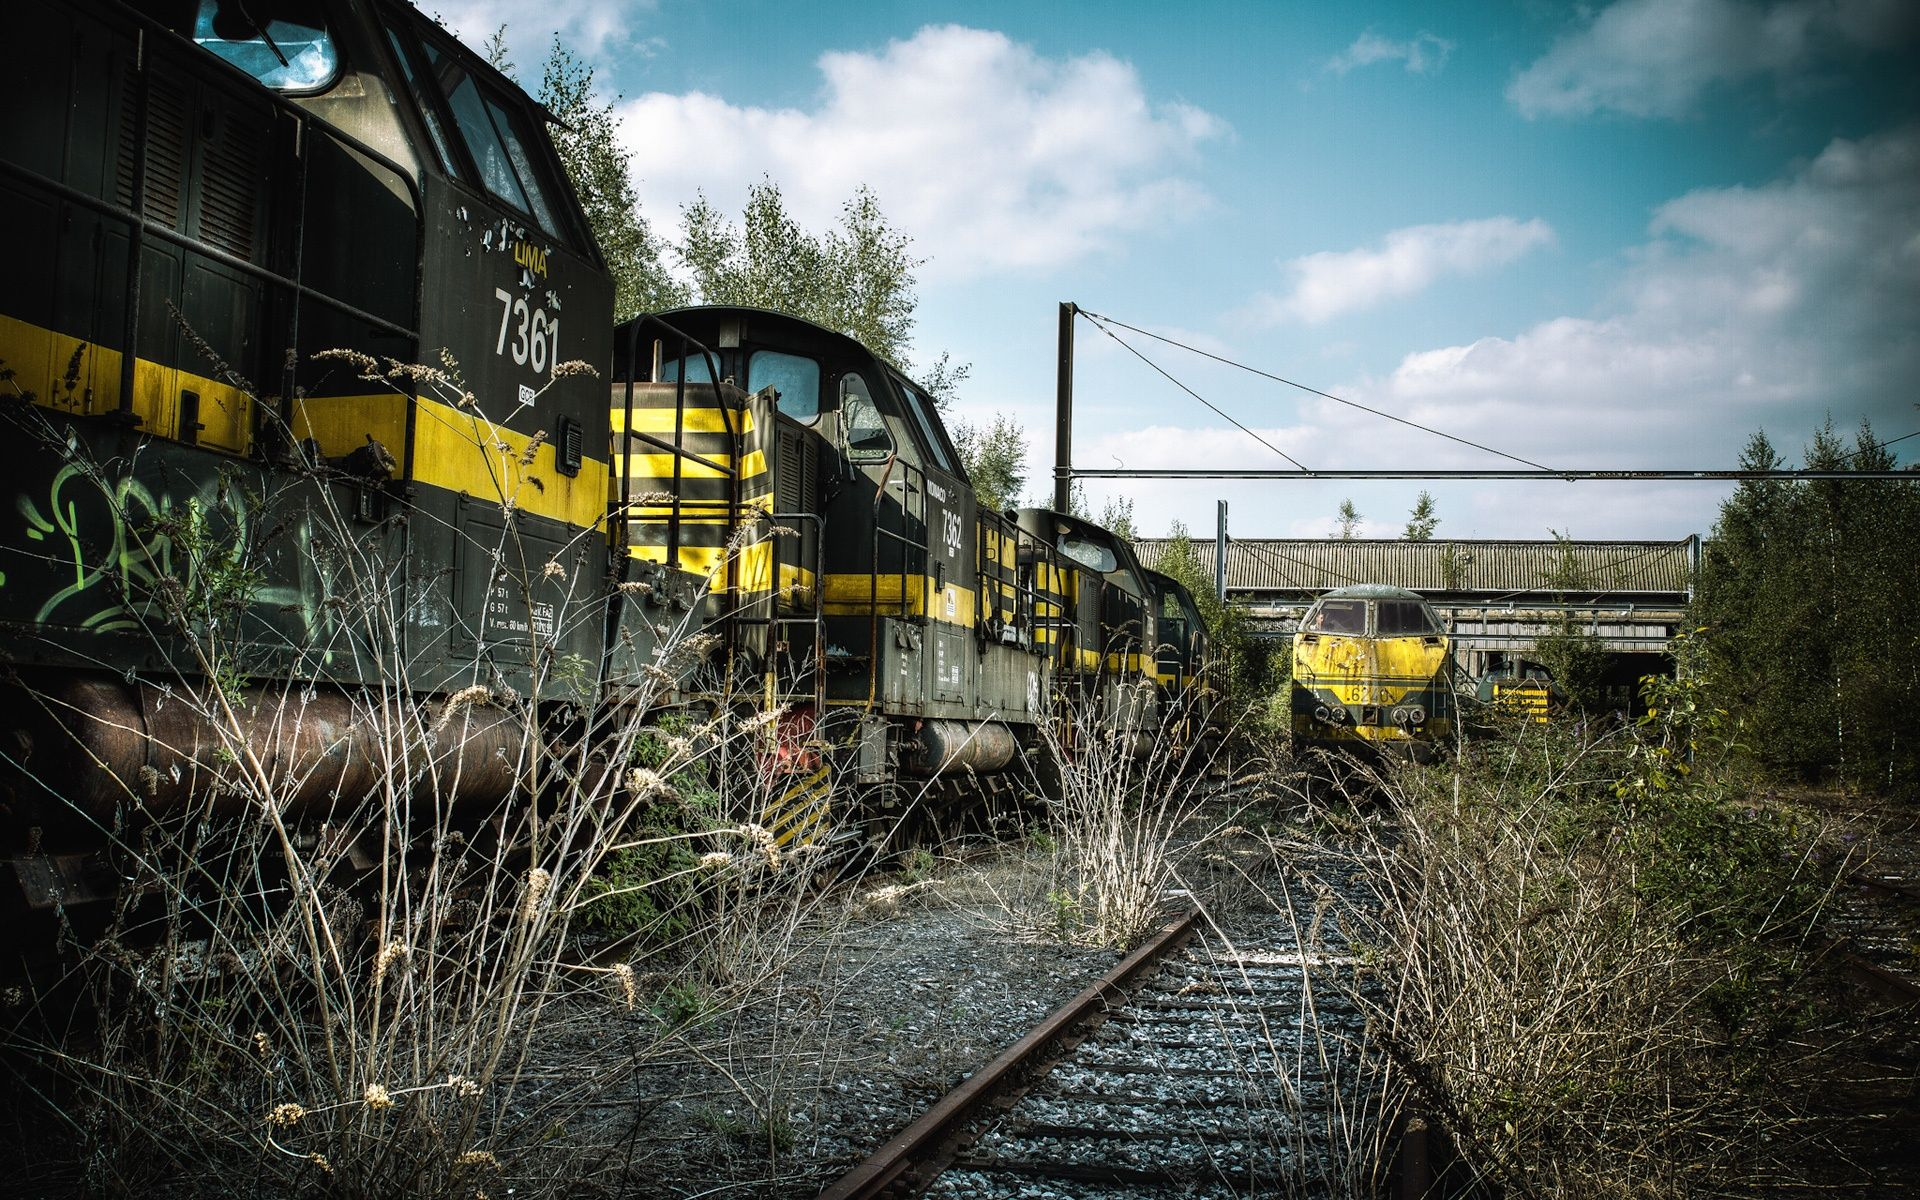 Abandoned Train Station Overgrown With Weeds Wallpaper 1920x1200 Resolution Wallpaper Download Train Wallpaper Abandoned Train Abandoned Train Station